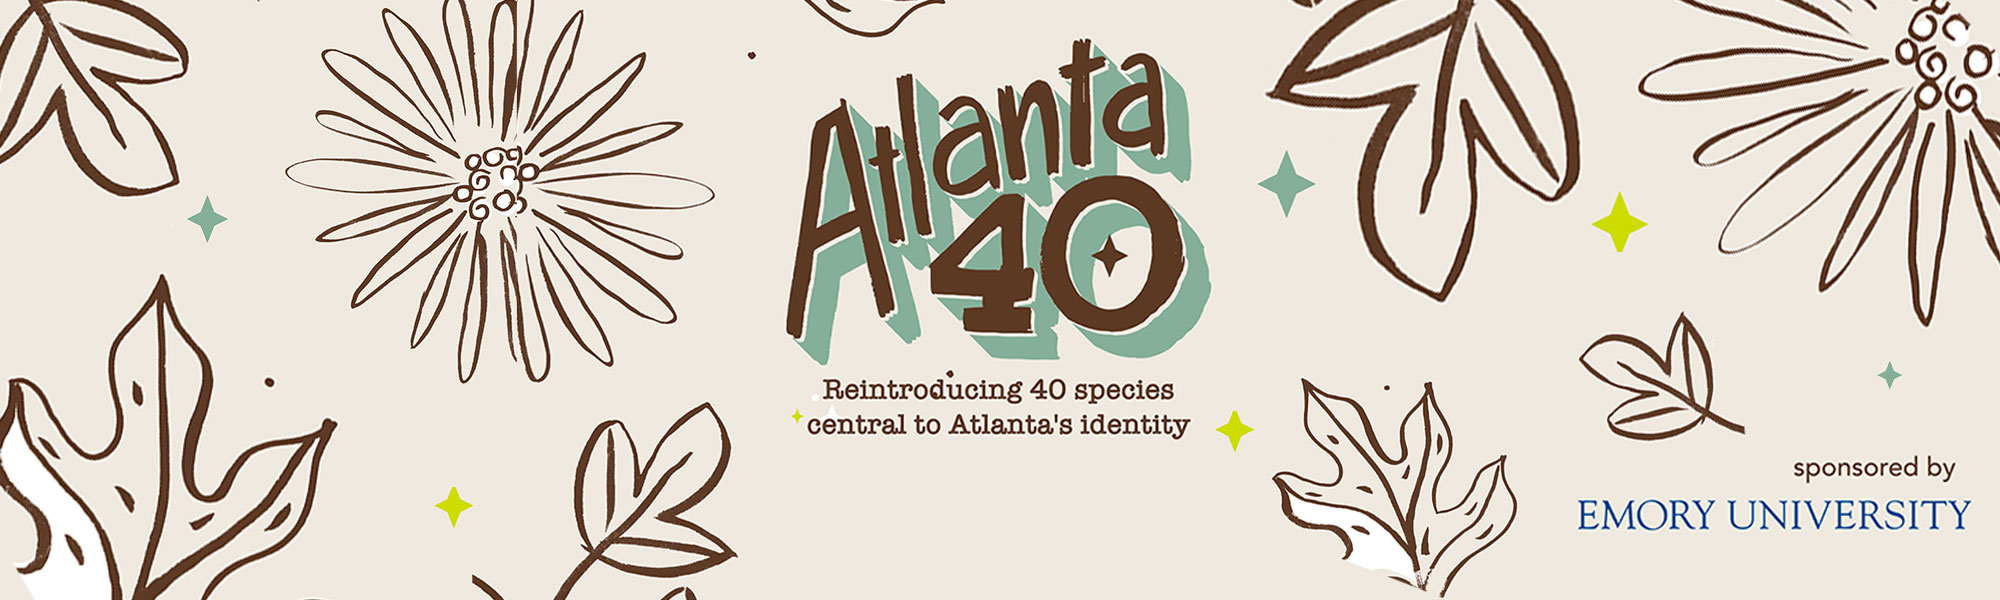 Atlanta 40, sponsored by Emory University. Reintroducing 40 species central to Atlanta's identity.